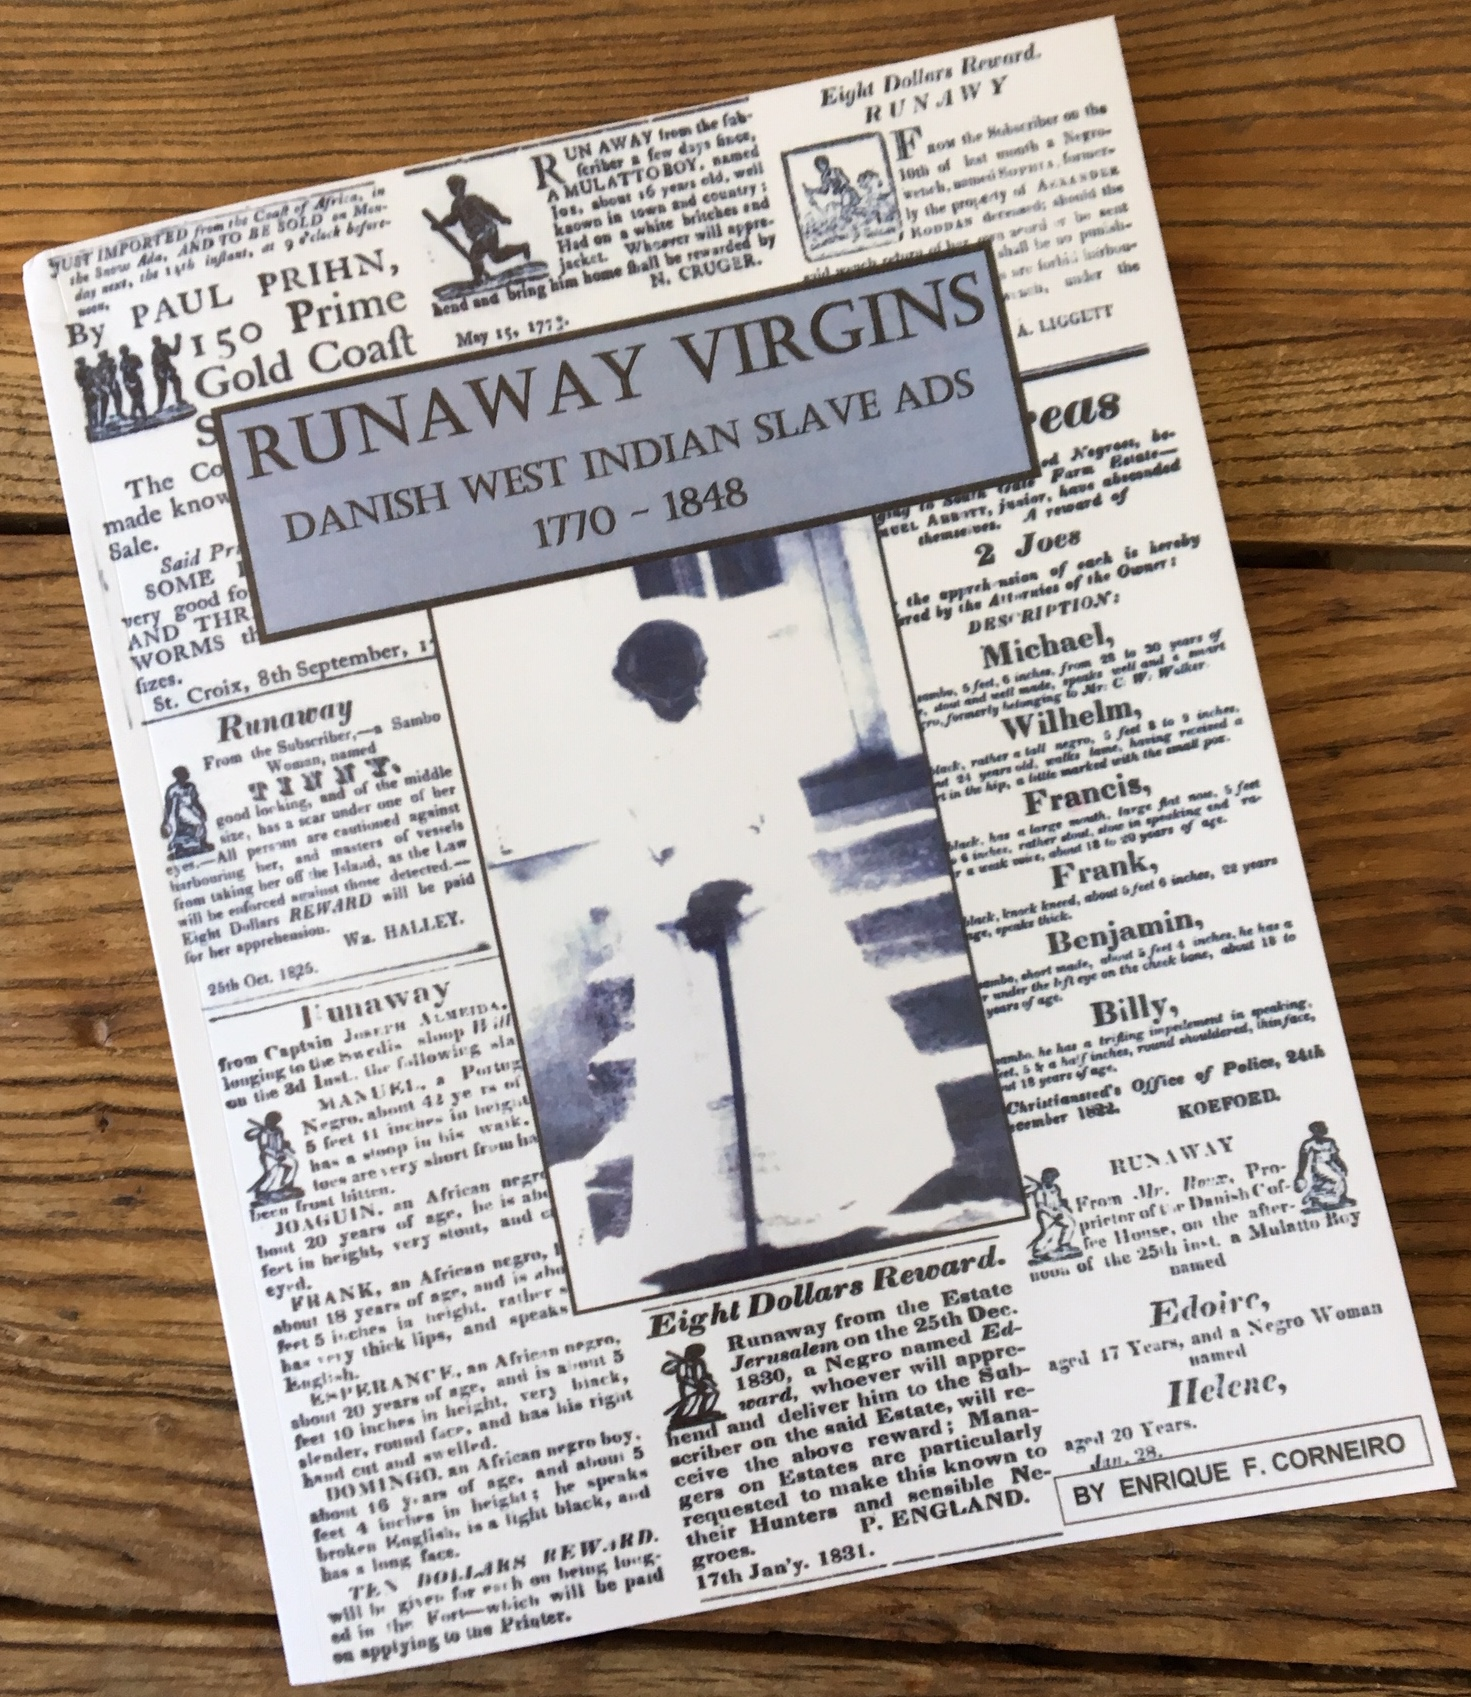 Runaway Virgins New Book by Enrique Corneiro, US Virgin Islands, Danish West Indies